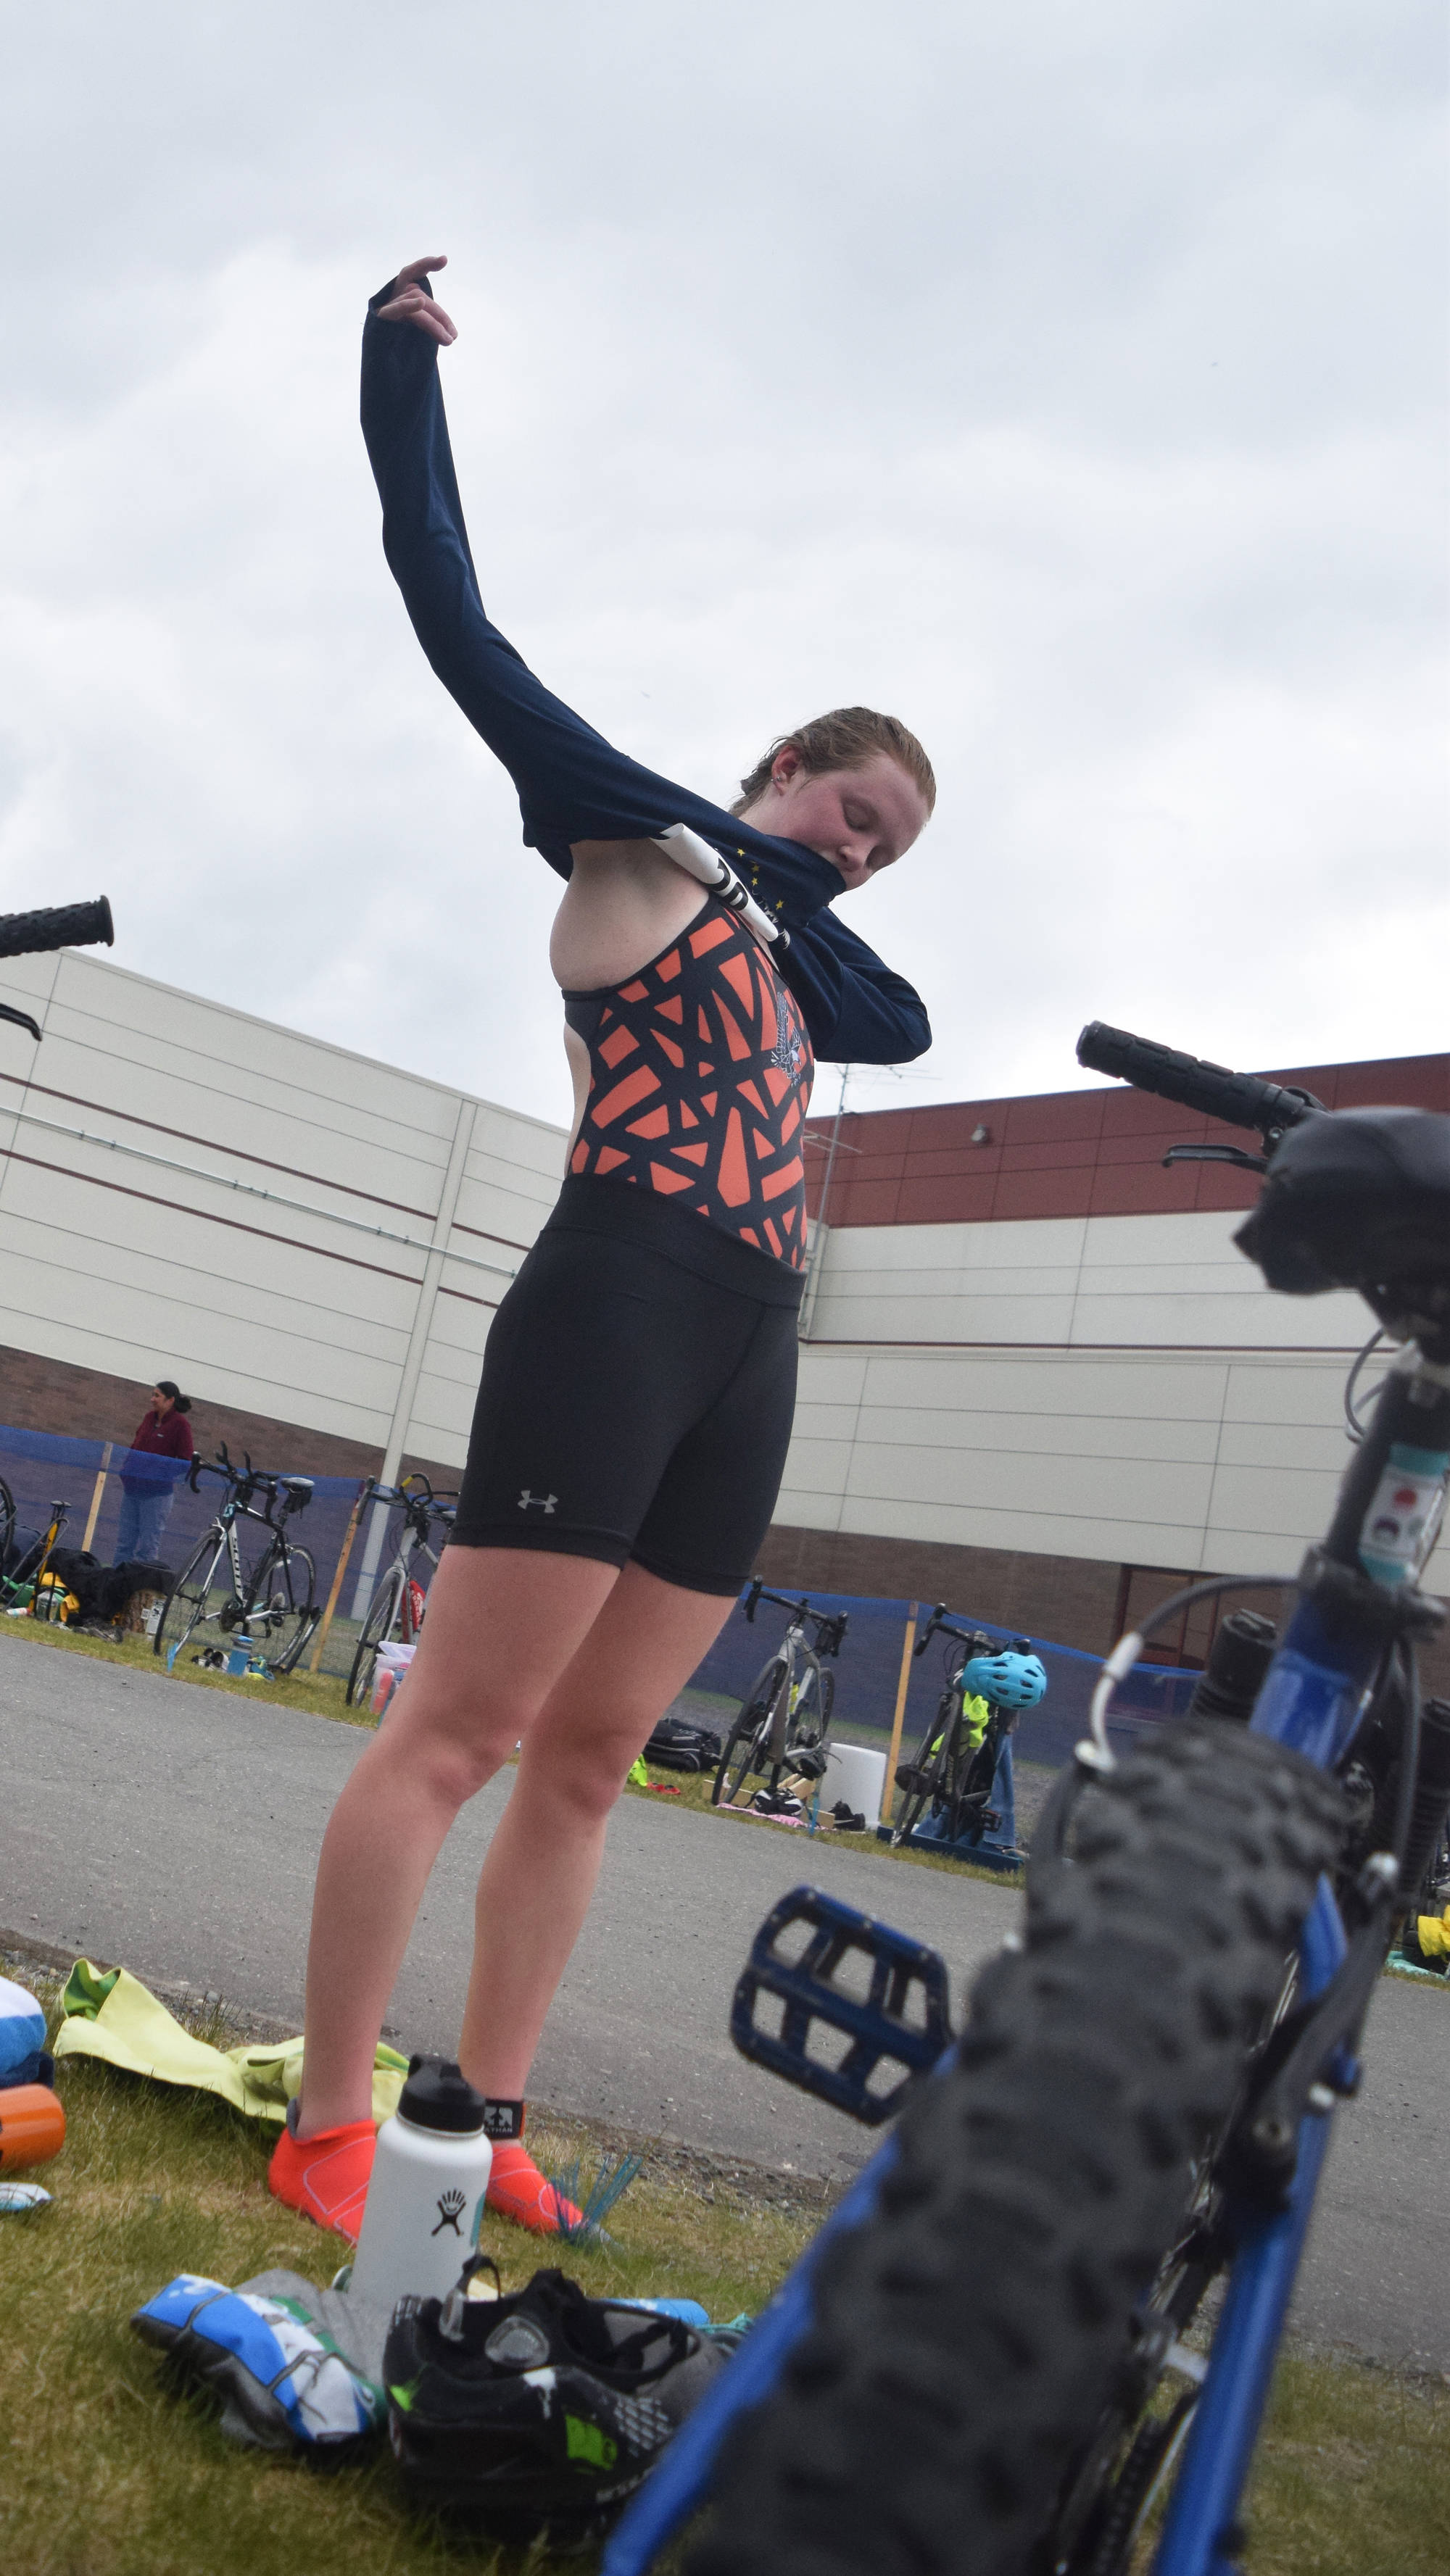 Anchorage's Afton Milliman changes clothes as she prepares for the cycling leg Sunday, June 9, 2019, in the Tri-The-Kenai Triathlon in Soldotna, Alaska. (Photo by Joey Klecka/Peninsula Clarion)